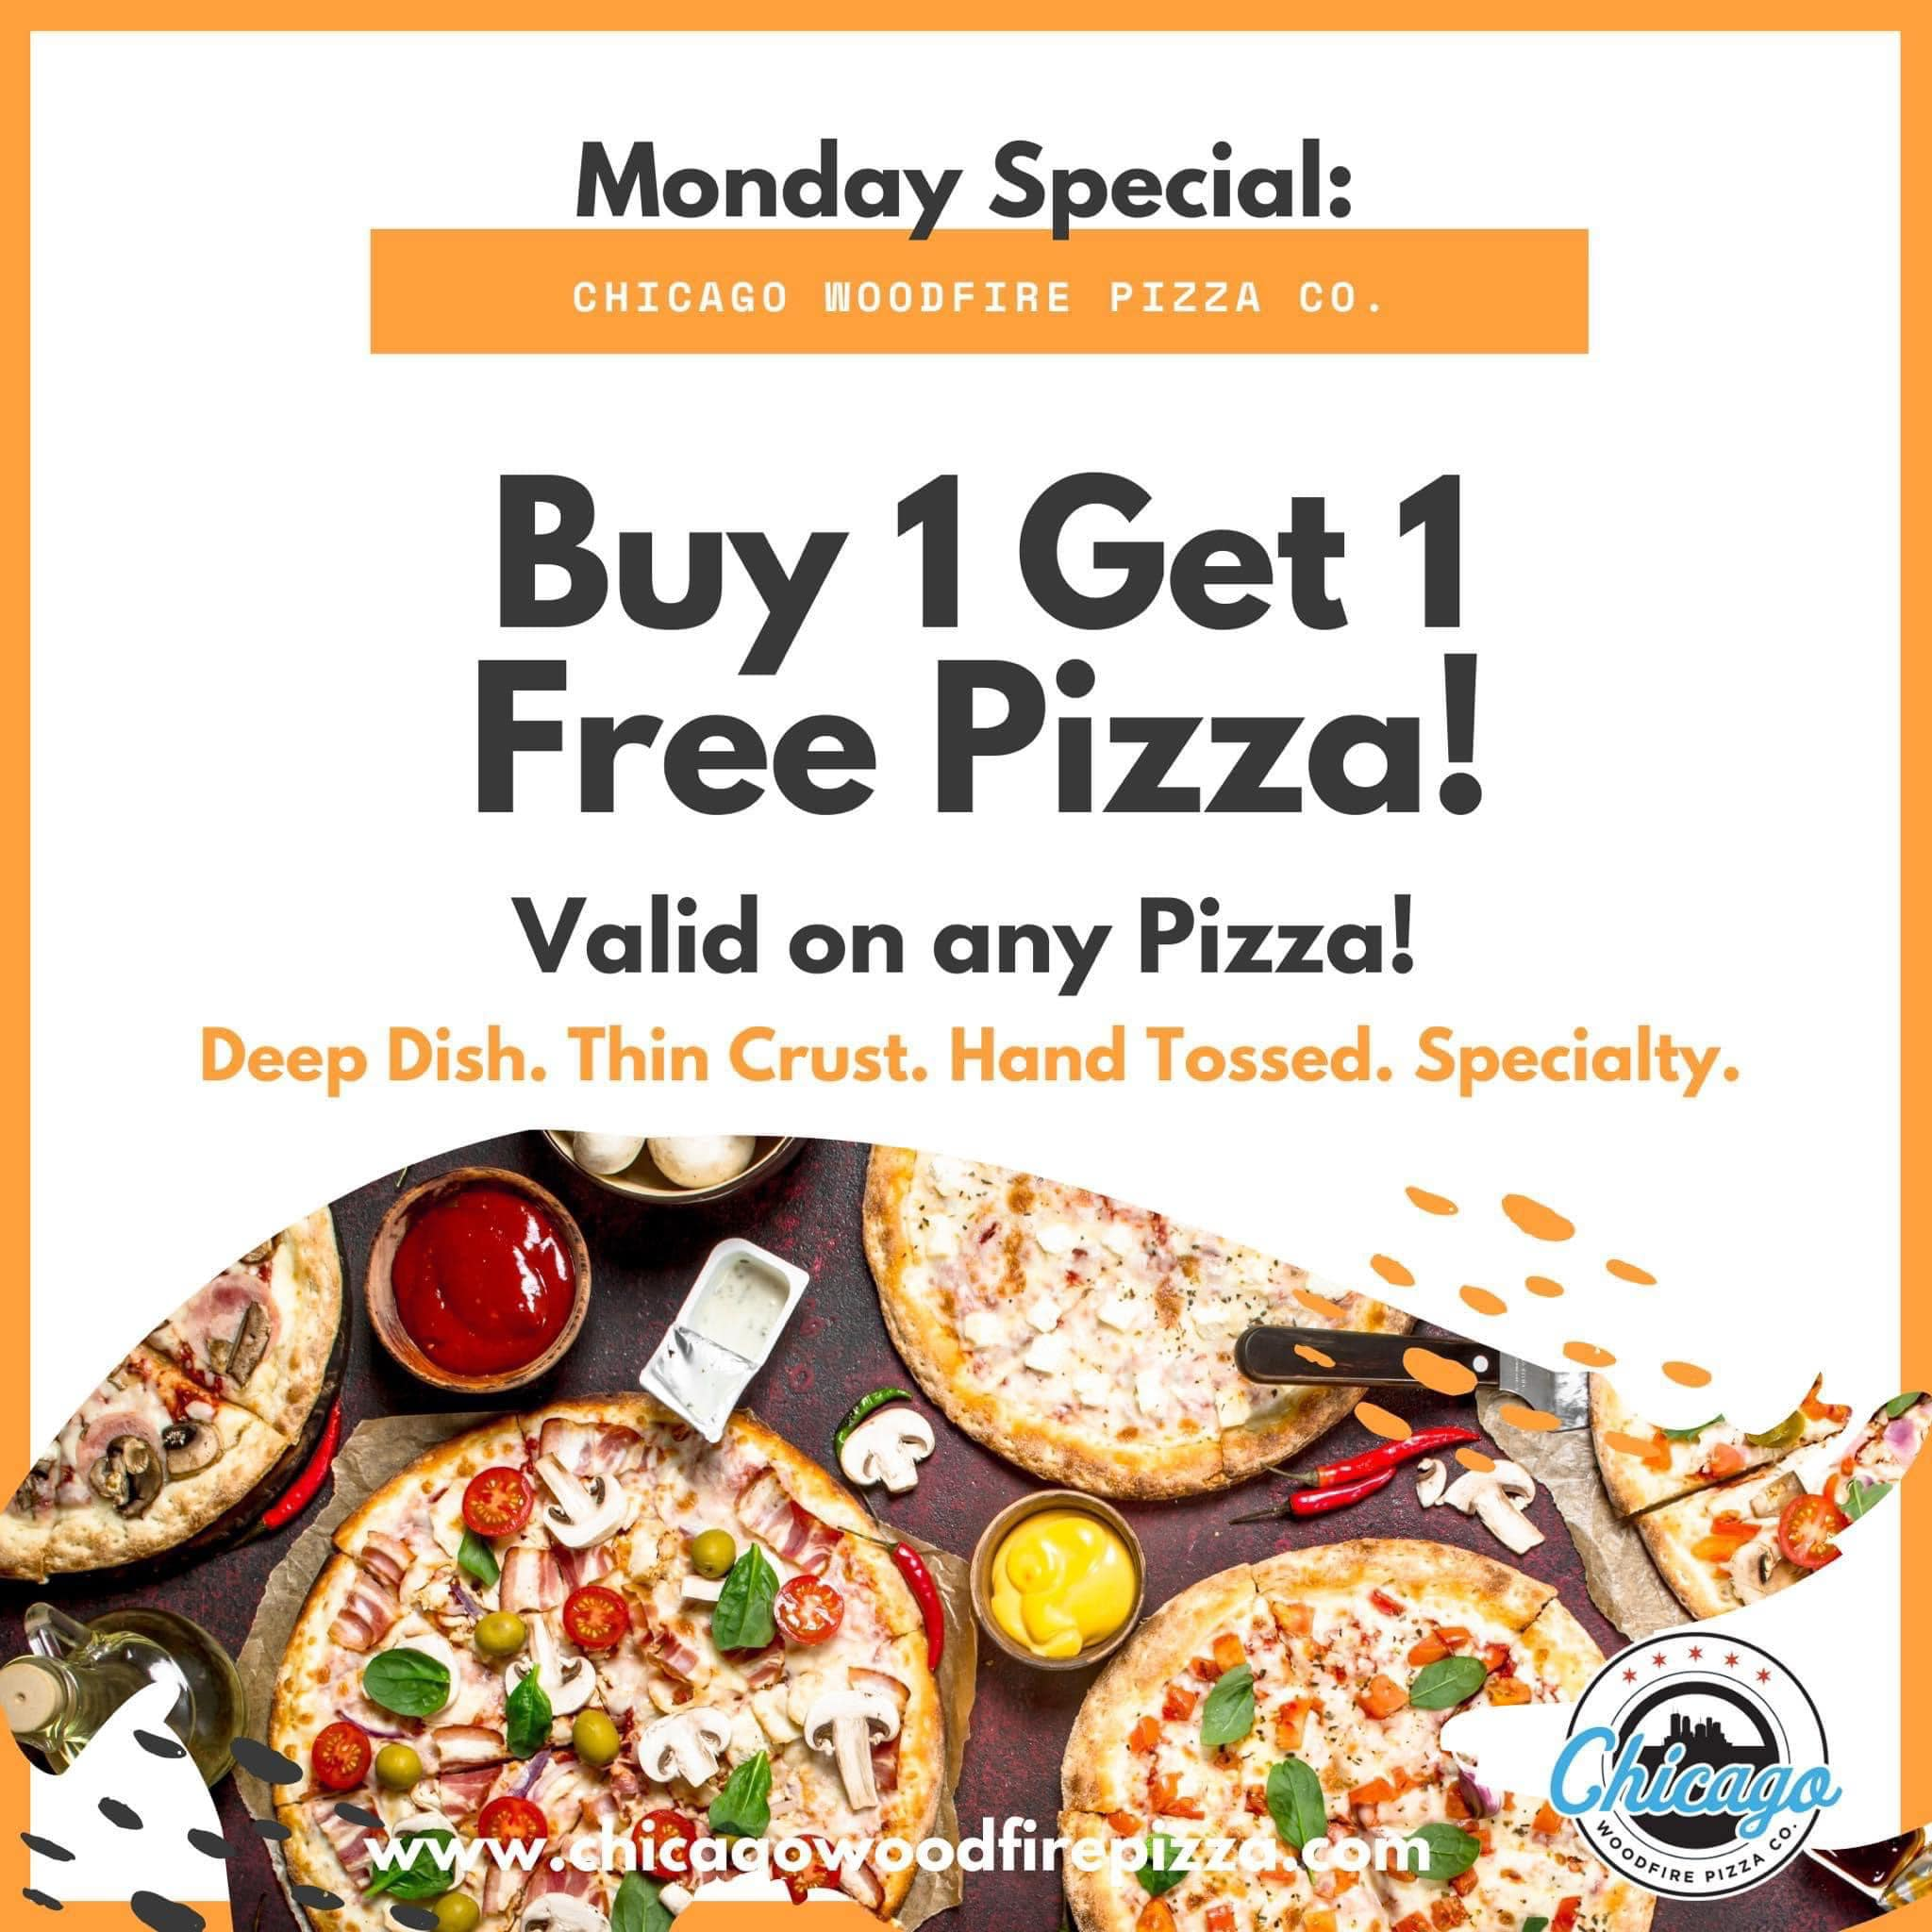 Monday's Buy 1 Get 1 Pizza